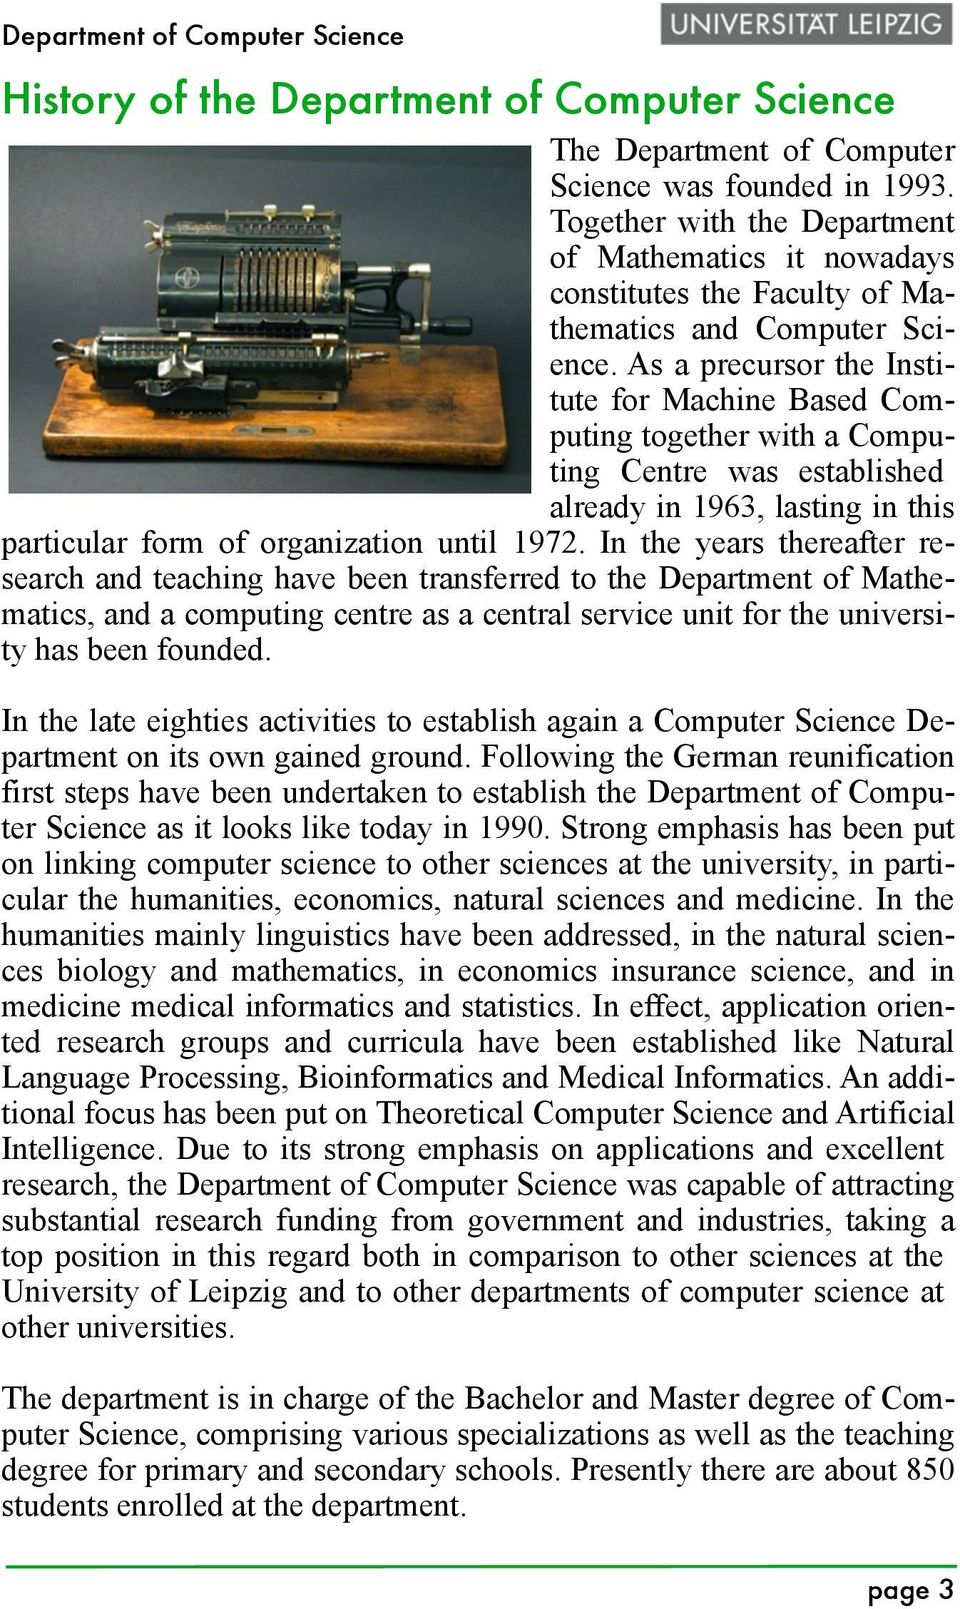 As a precursor the Institute for Machine Based Computing together with a Computing Centre was established already in 1963, lasting in this particular form of organization until 1972.